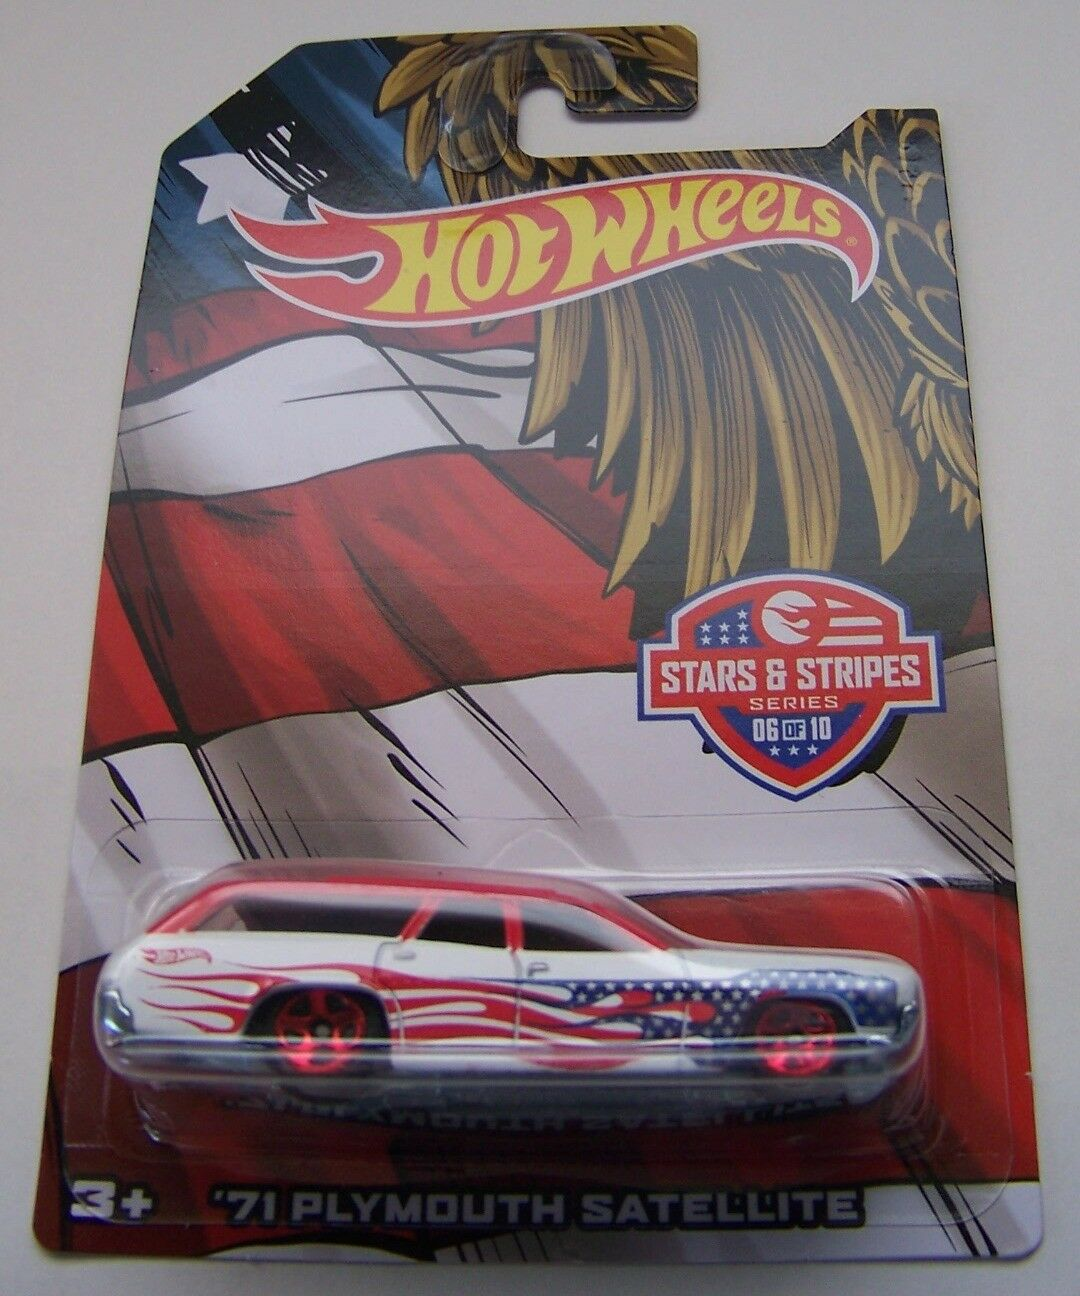 2016 Hot Wheels Stars & Stripes Complete Set of of of 10 Factory Box Never Opened 03c75c